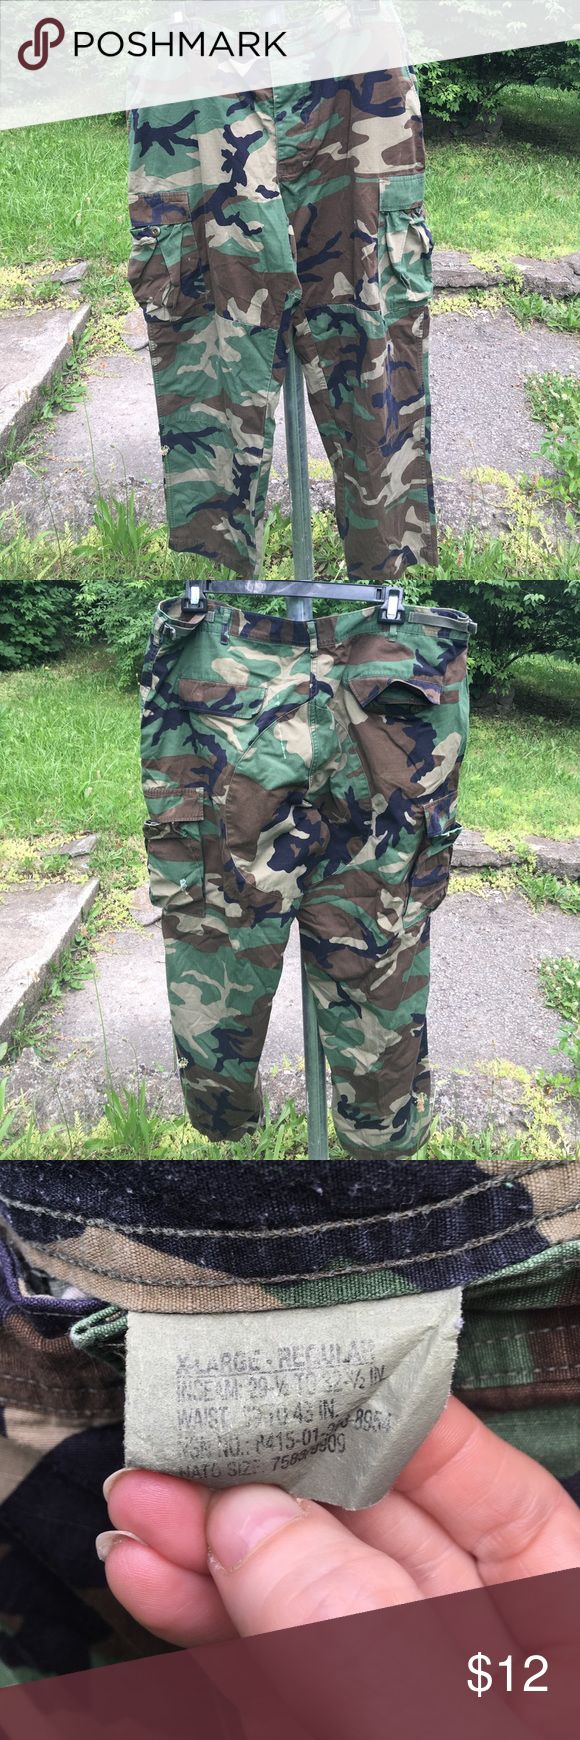 Real military issue camouflage pants. X-large regular . 29 1/2 to 32 1/2 inch inseam. 39 - 43 inch waist. Two tears on back which I have shown clearly in pics. Military Pants Cargo